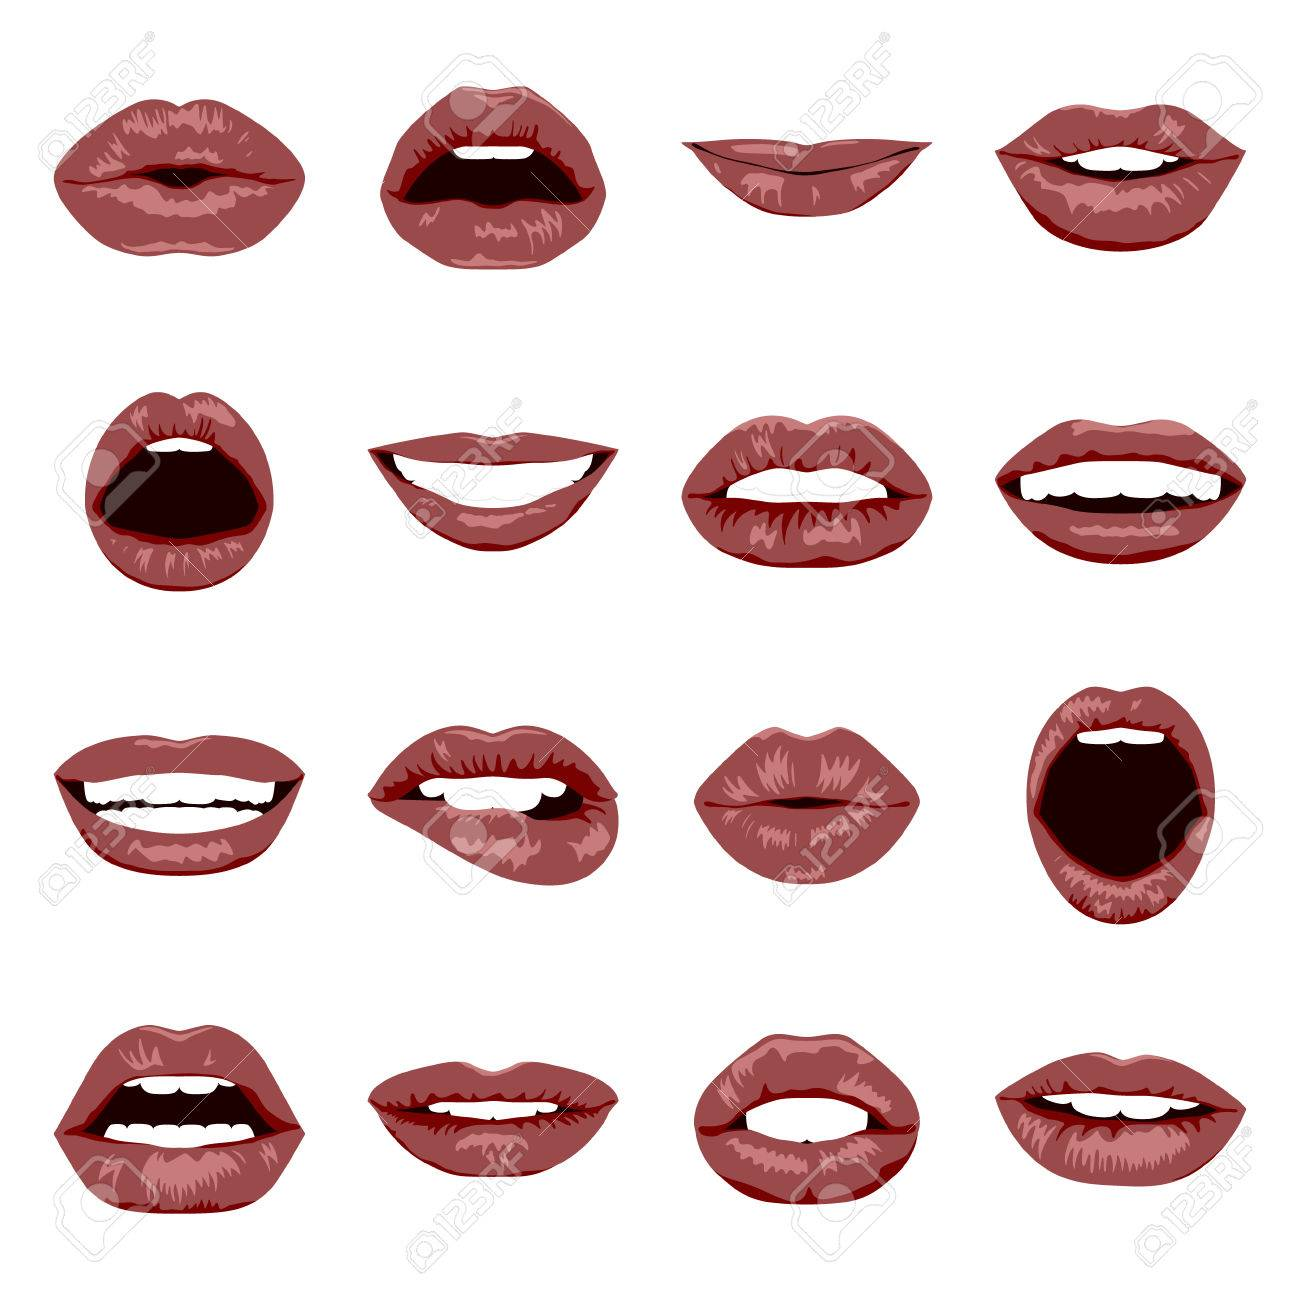 Lips set. Womans mouth close up with expressing different emotions. Vector EPS8 illustration. - 54104833